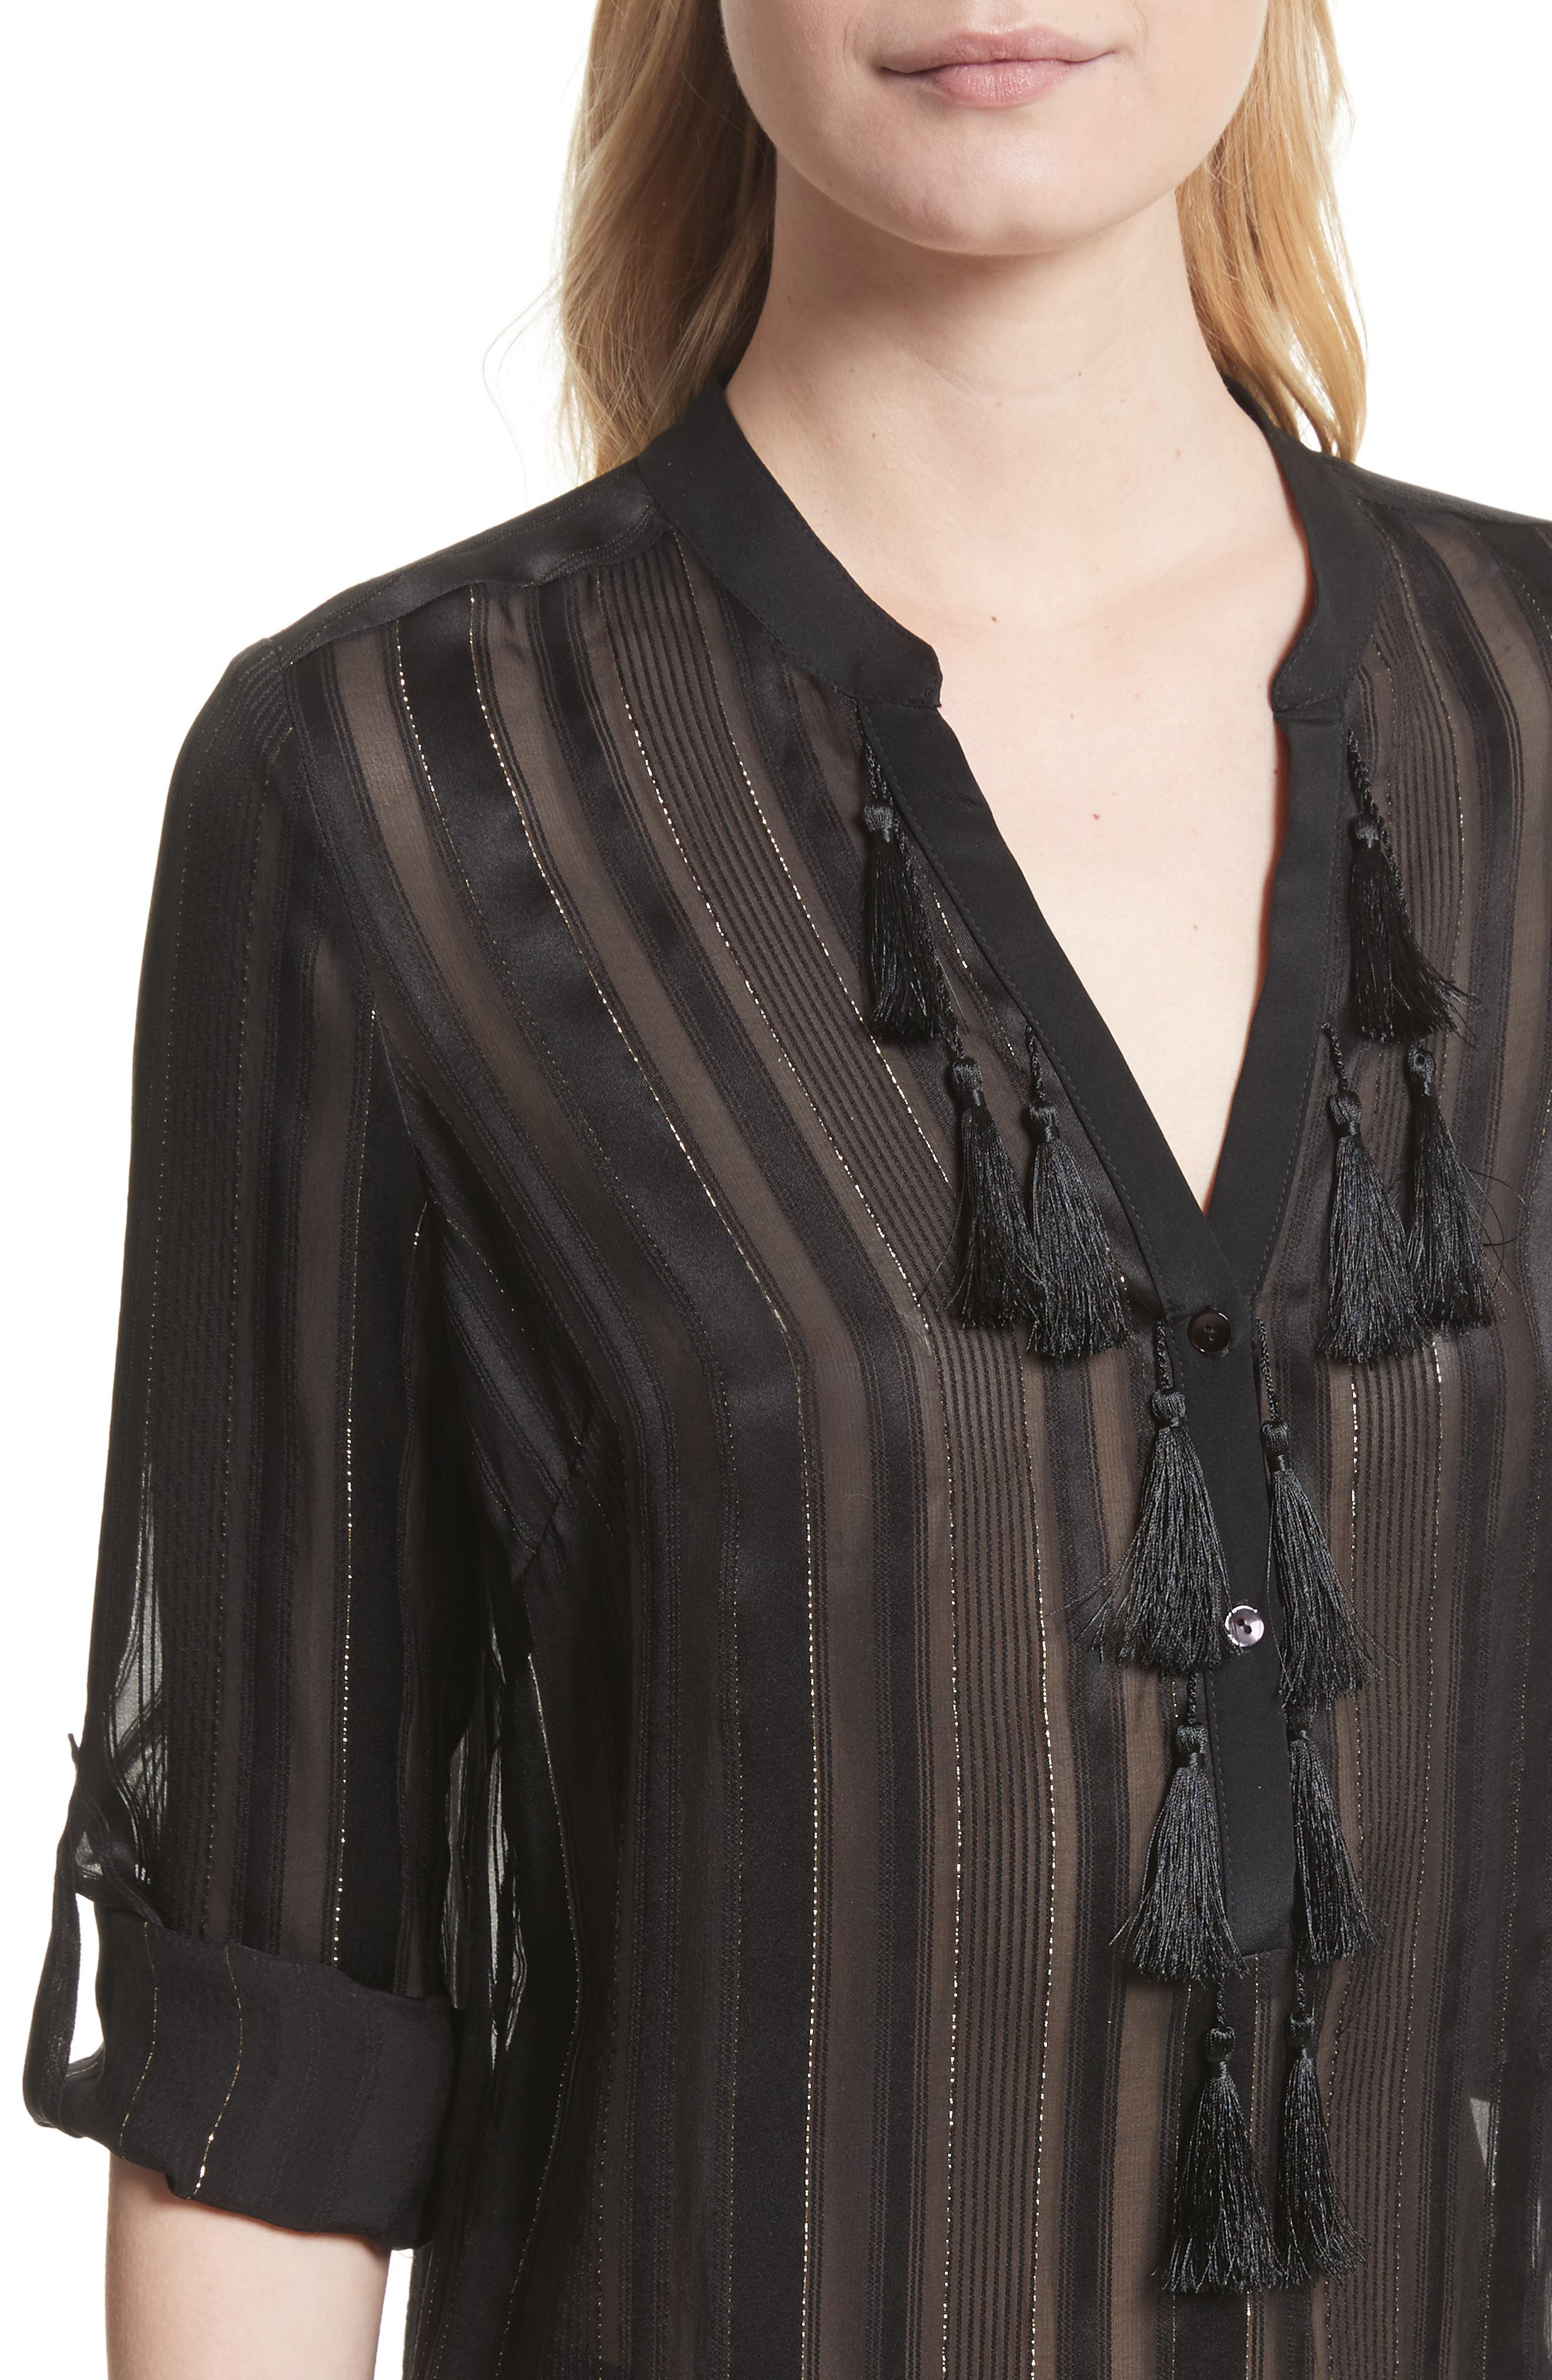 Nadja Tassel Blouse,                             Alternate thumbnail 4, color,                             Black/ Gold